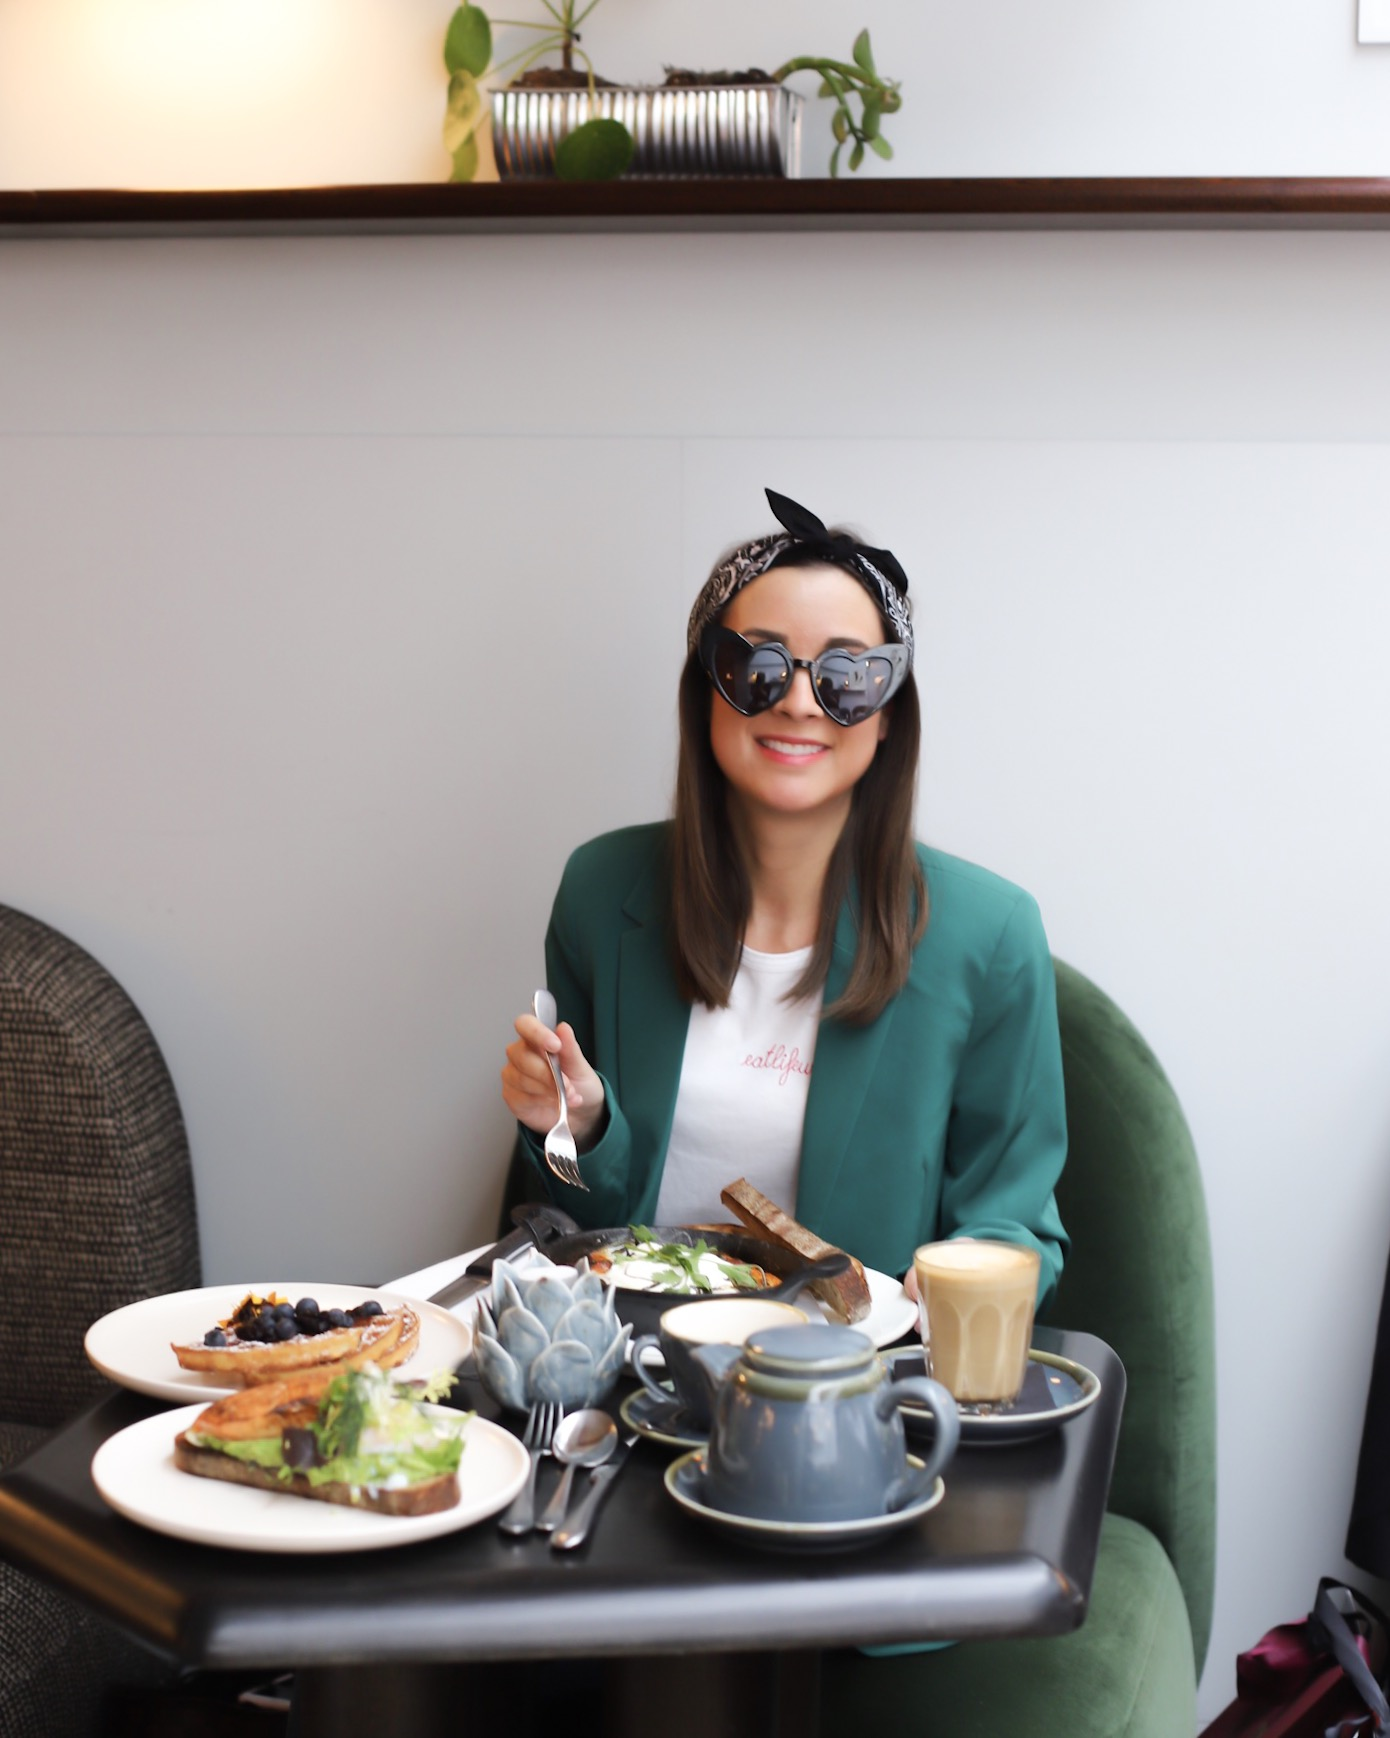 Henrietta Hotel, Covent Garden, Eat Life With Style, hôtel, londres, brunch